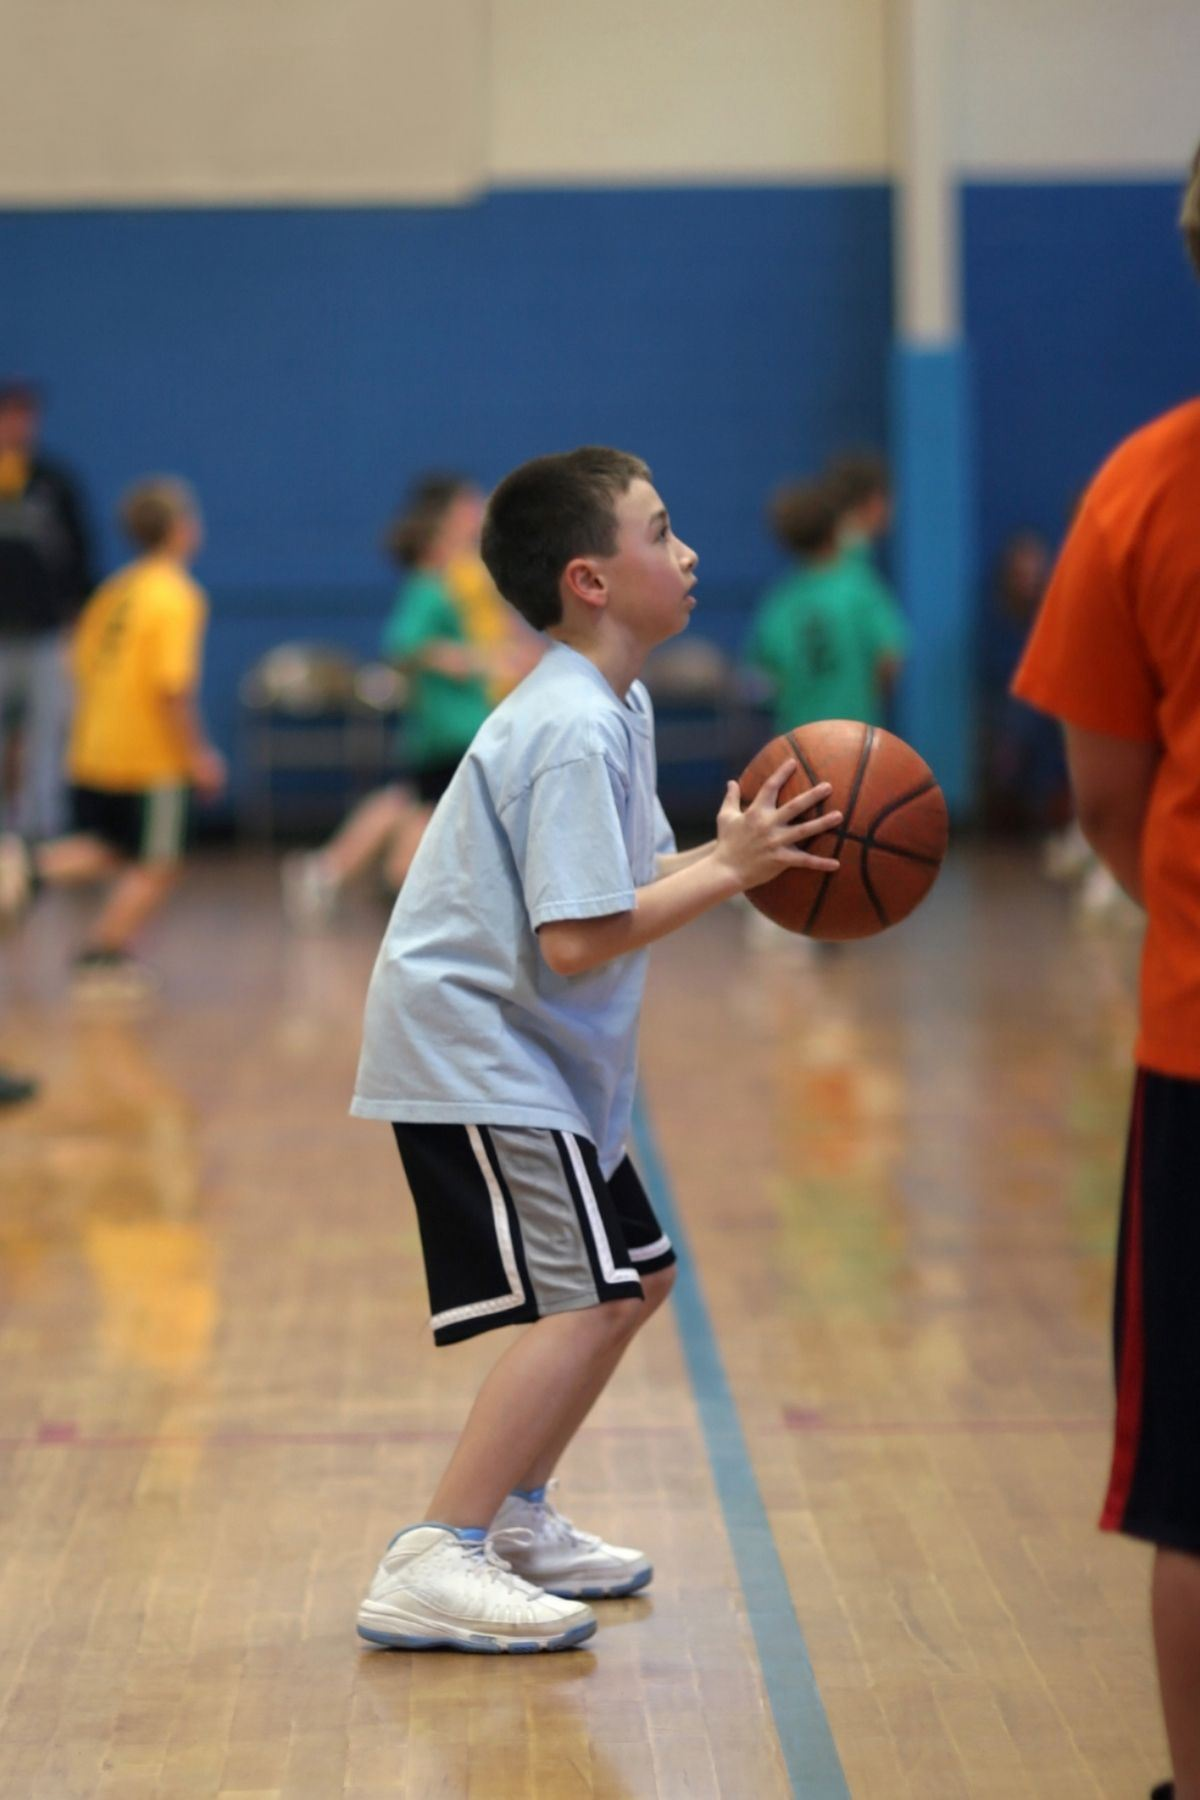 Photo of youth crouching to throw a basketball